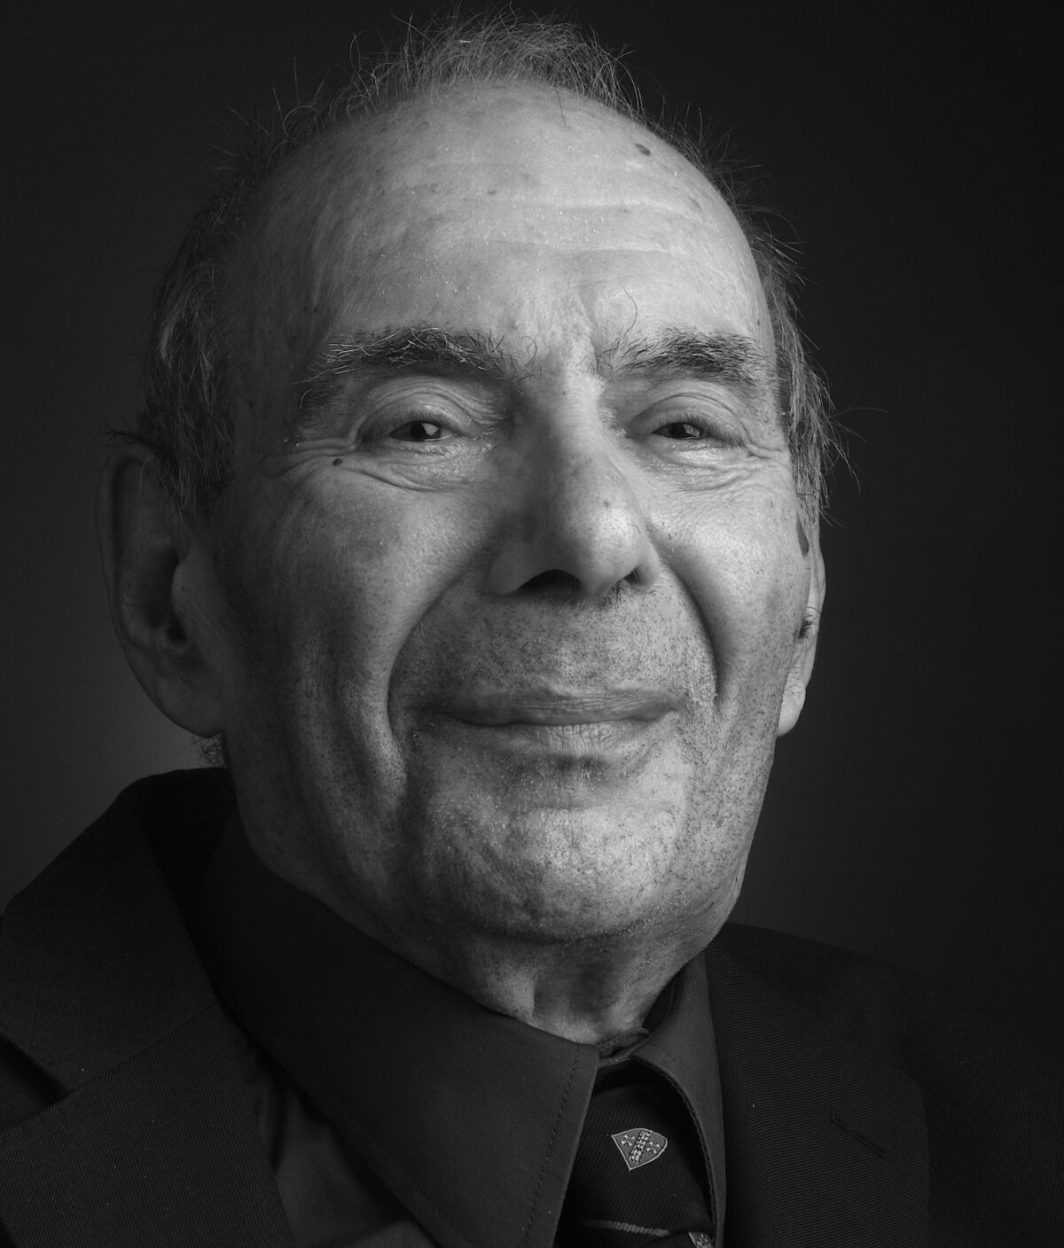 Rabbi Lionel Blue, picture by Ajamu